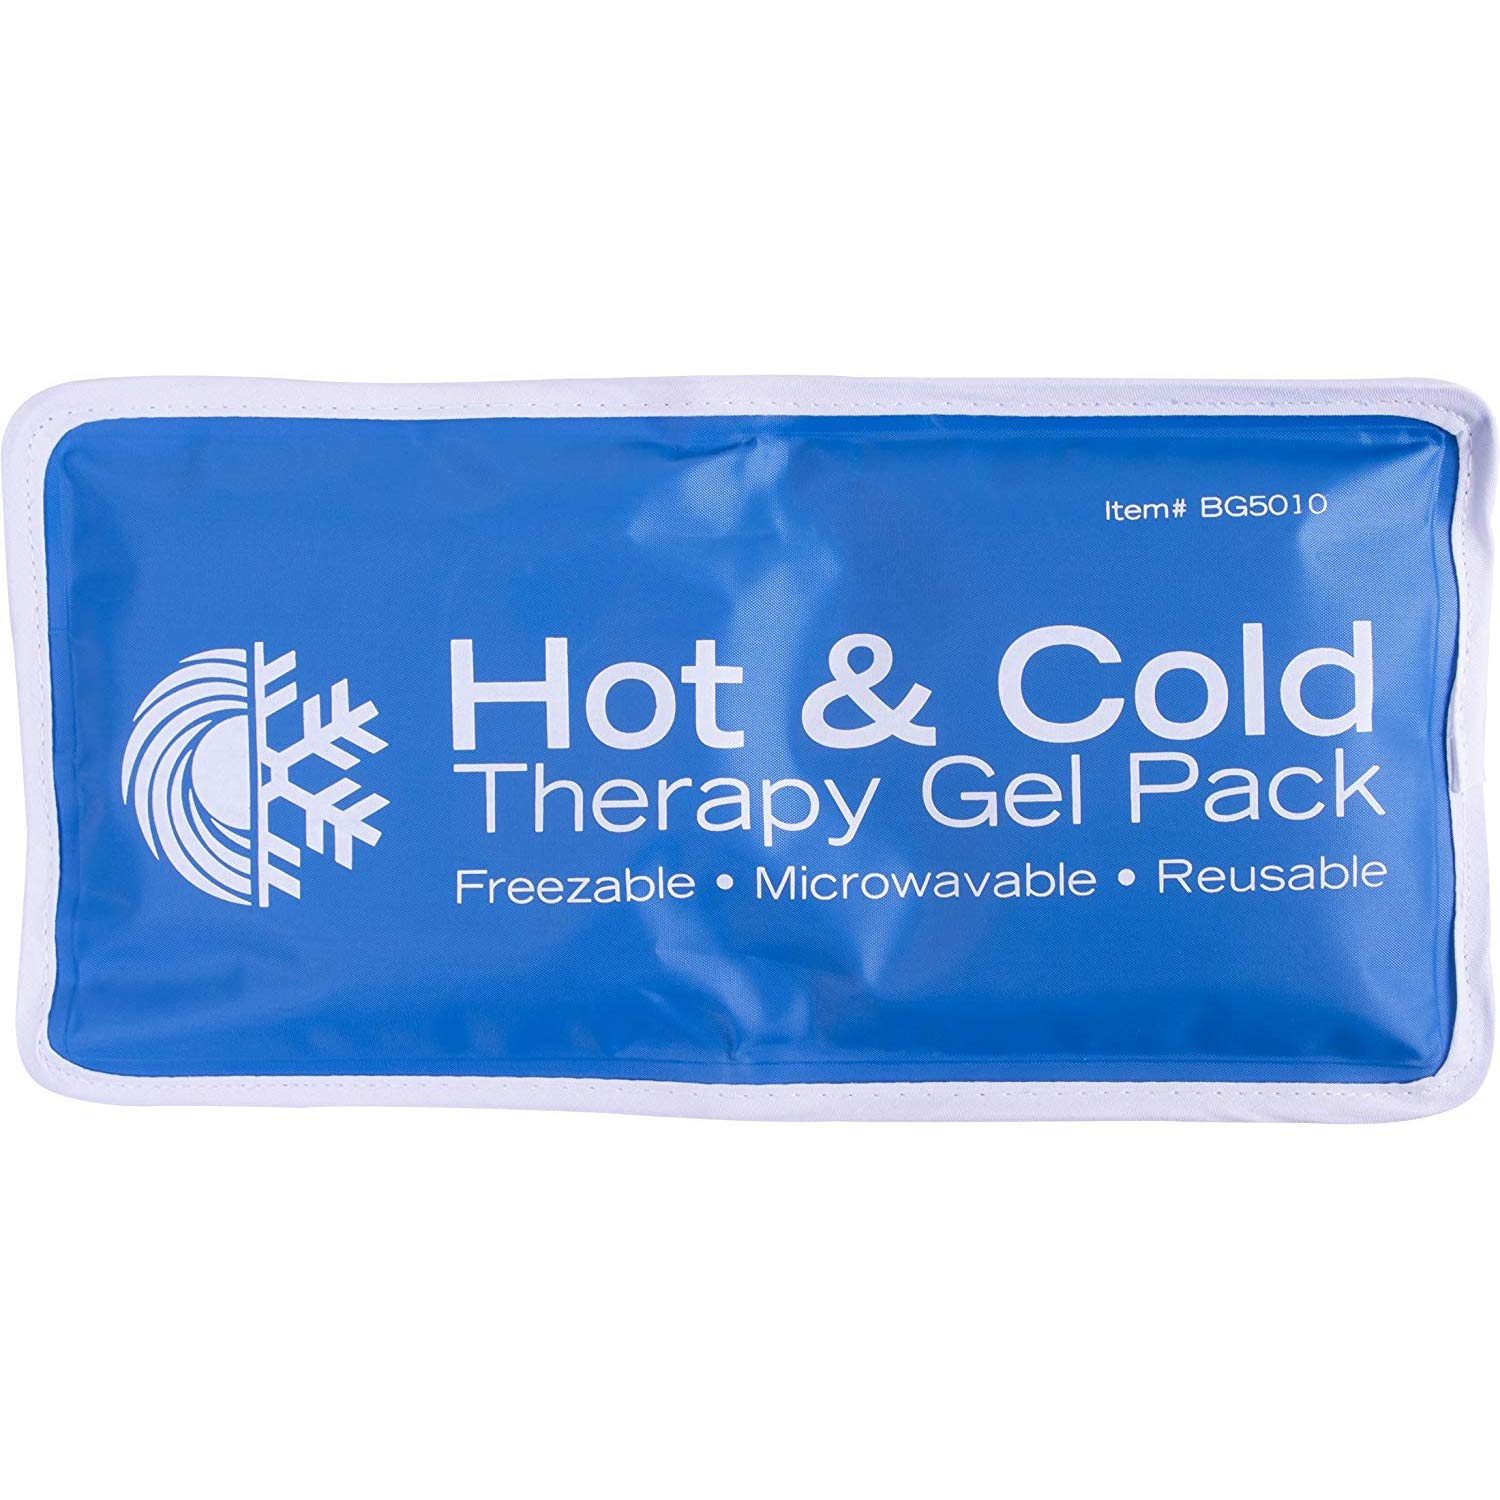 Roscoe Reusable Cold Pack and Hot Pack – Ice Pack For Knee, Shoulder, Back, Injuries - Microwave Heating Pad, 5 x 10 Inches